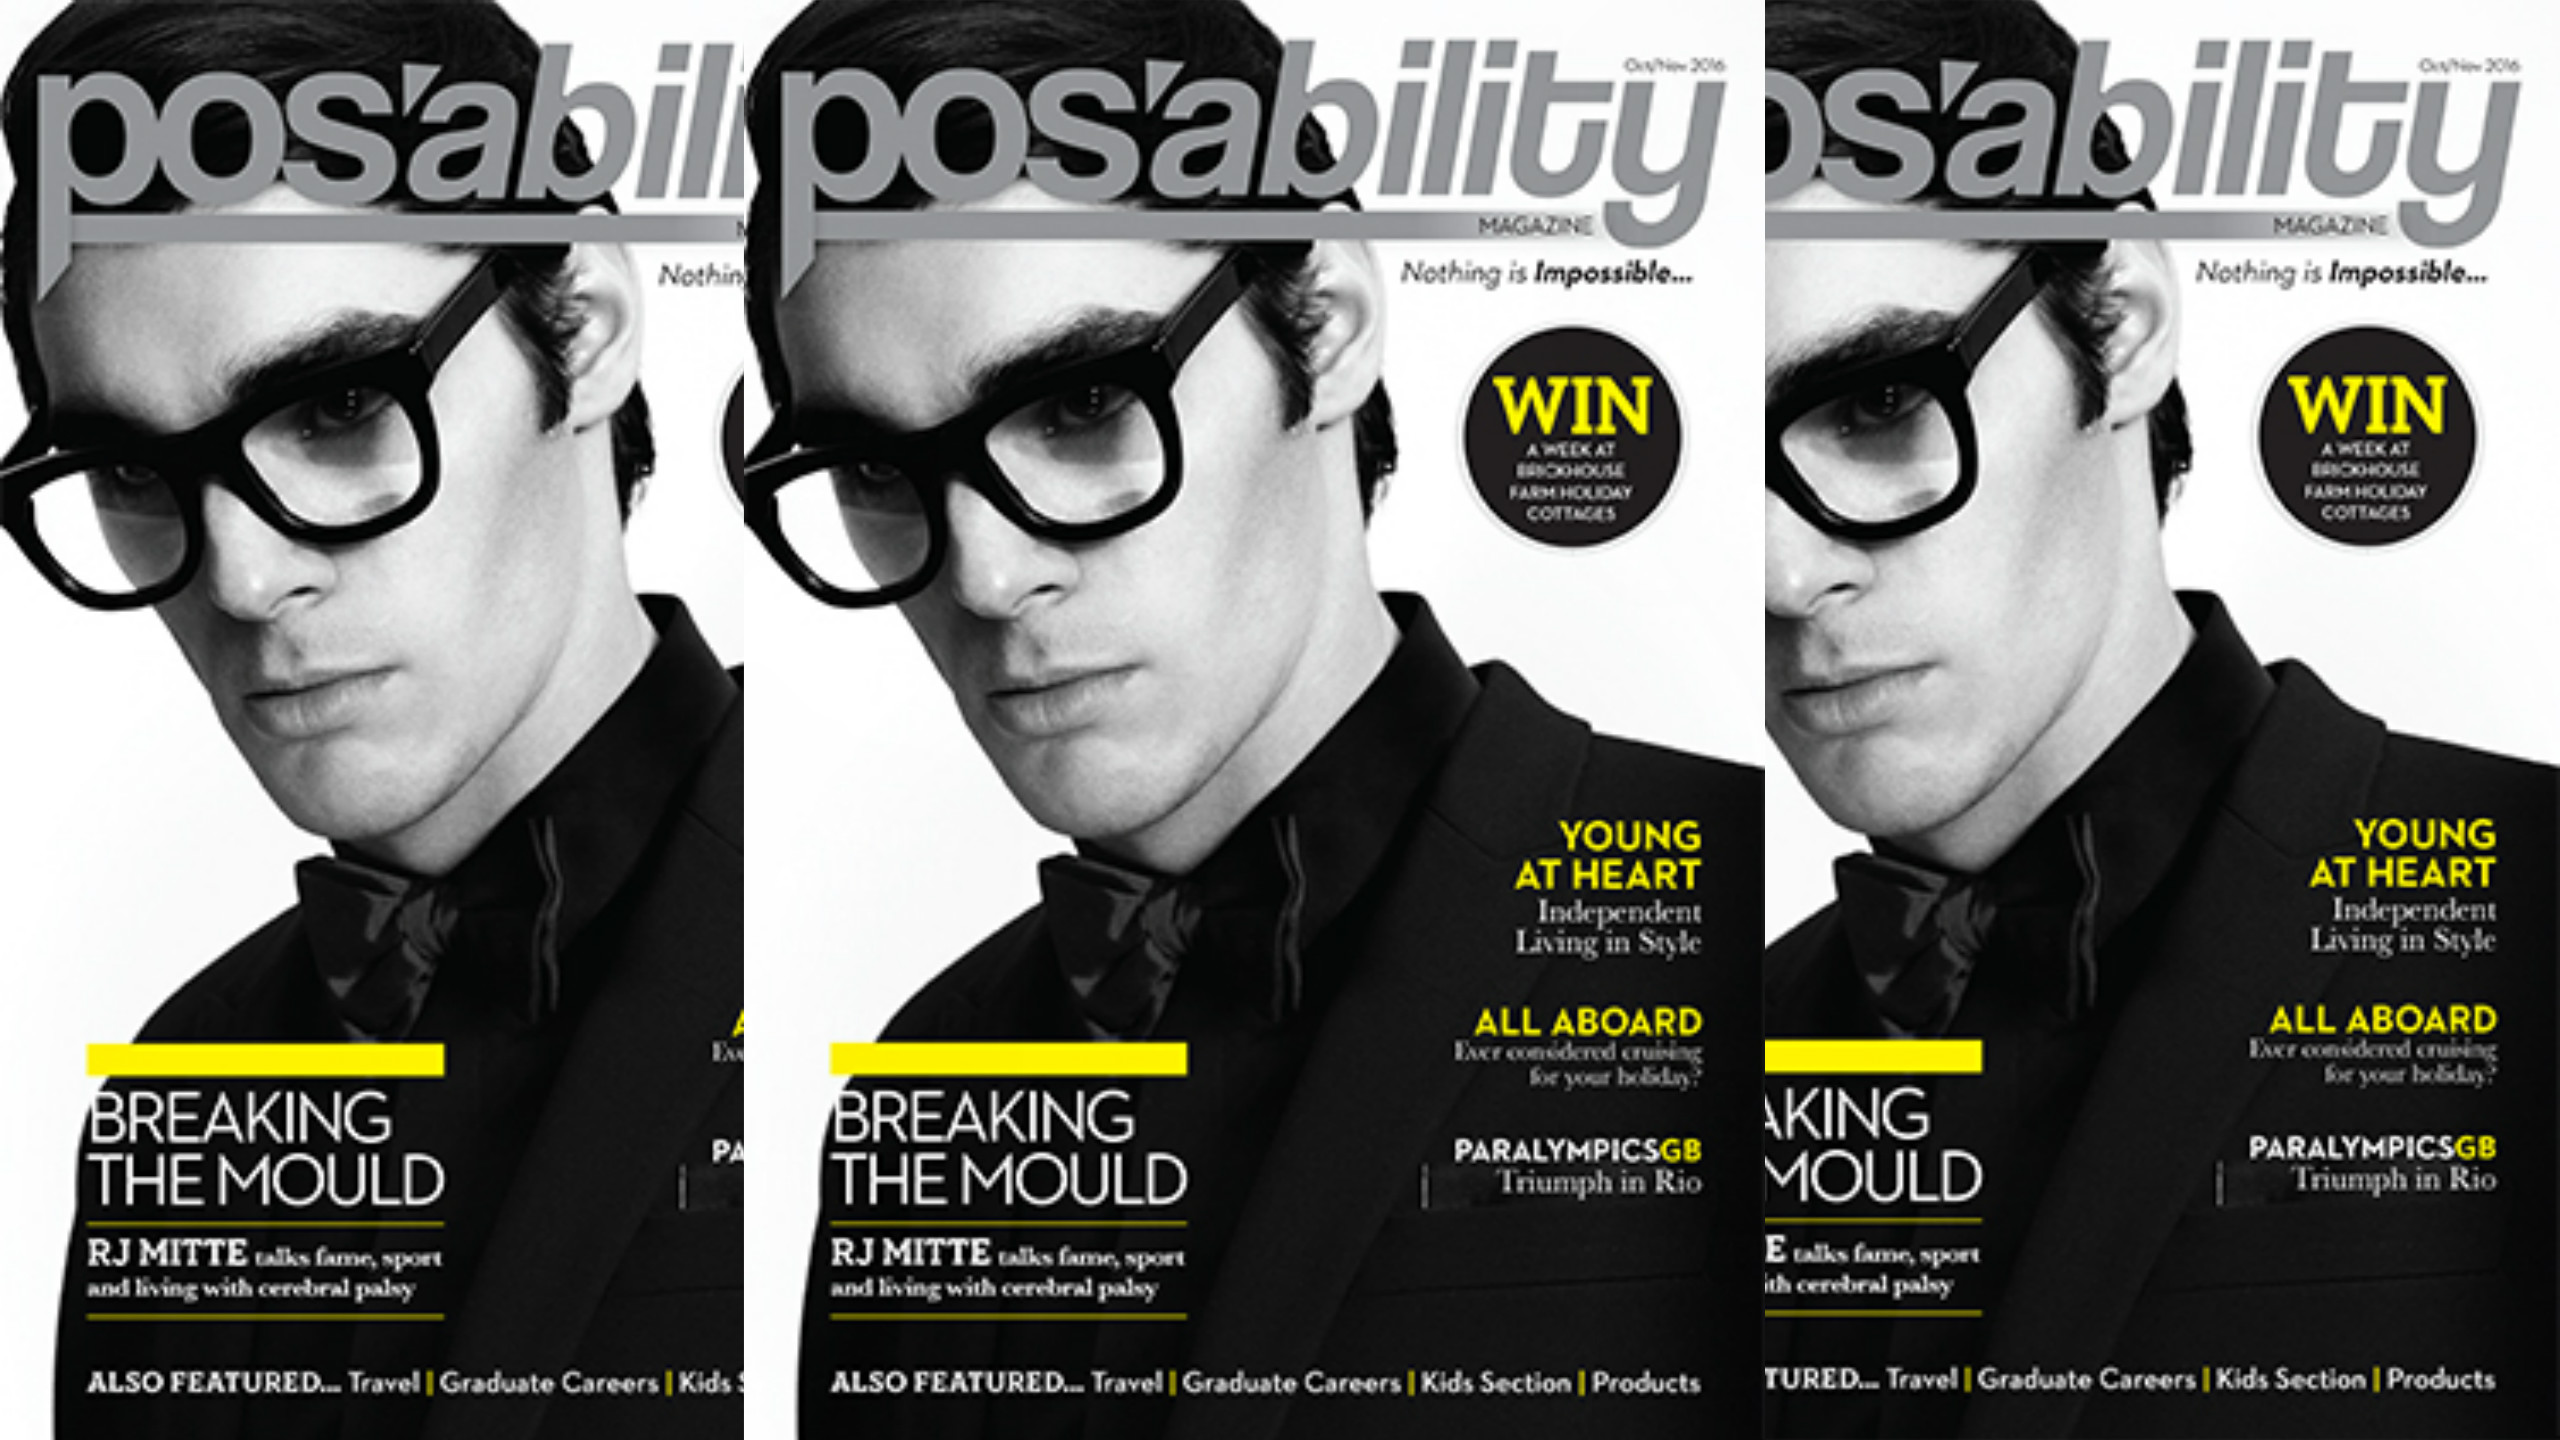 The Oct/Nov issue is out now!